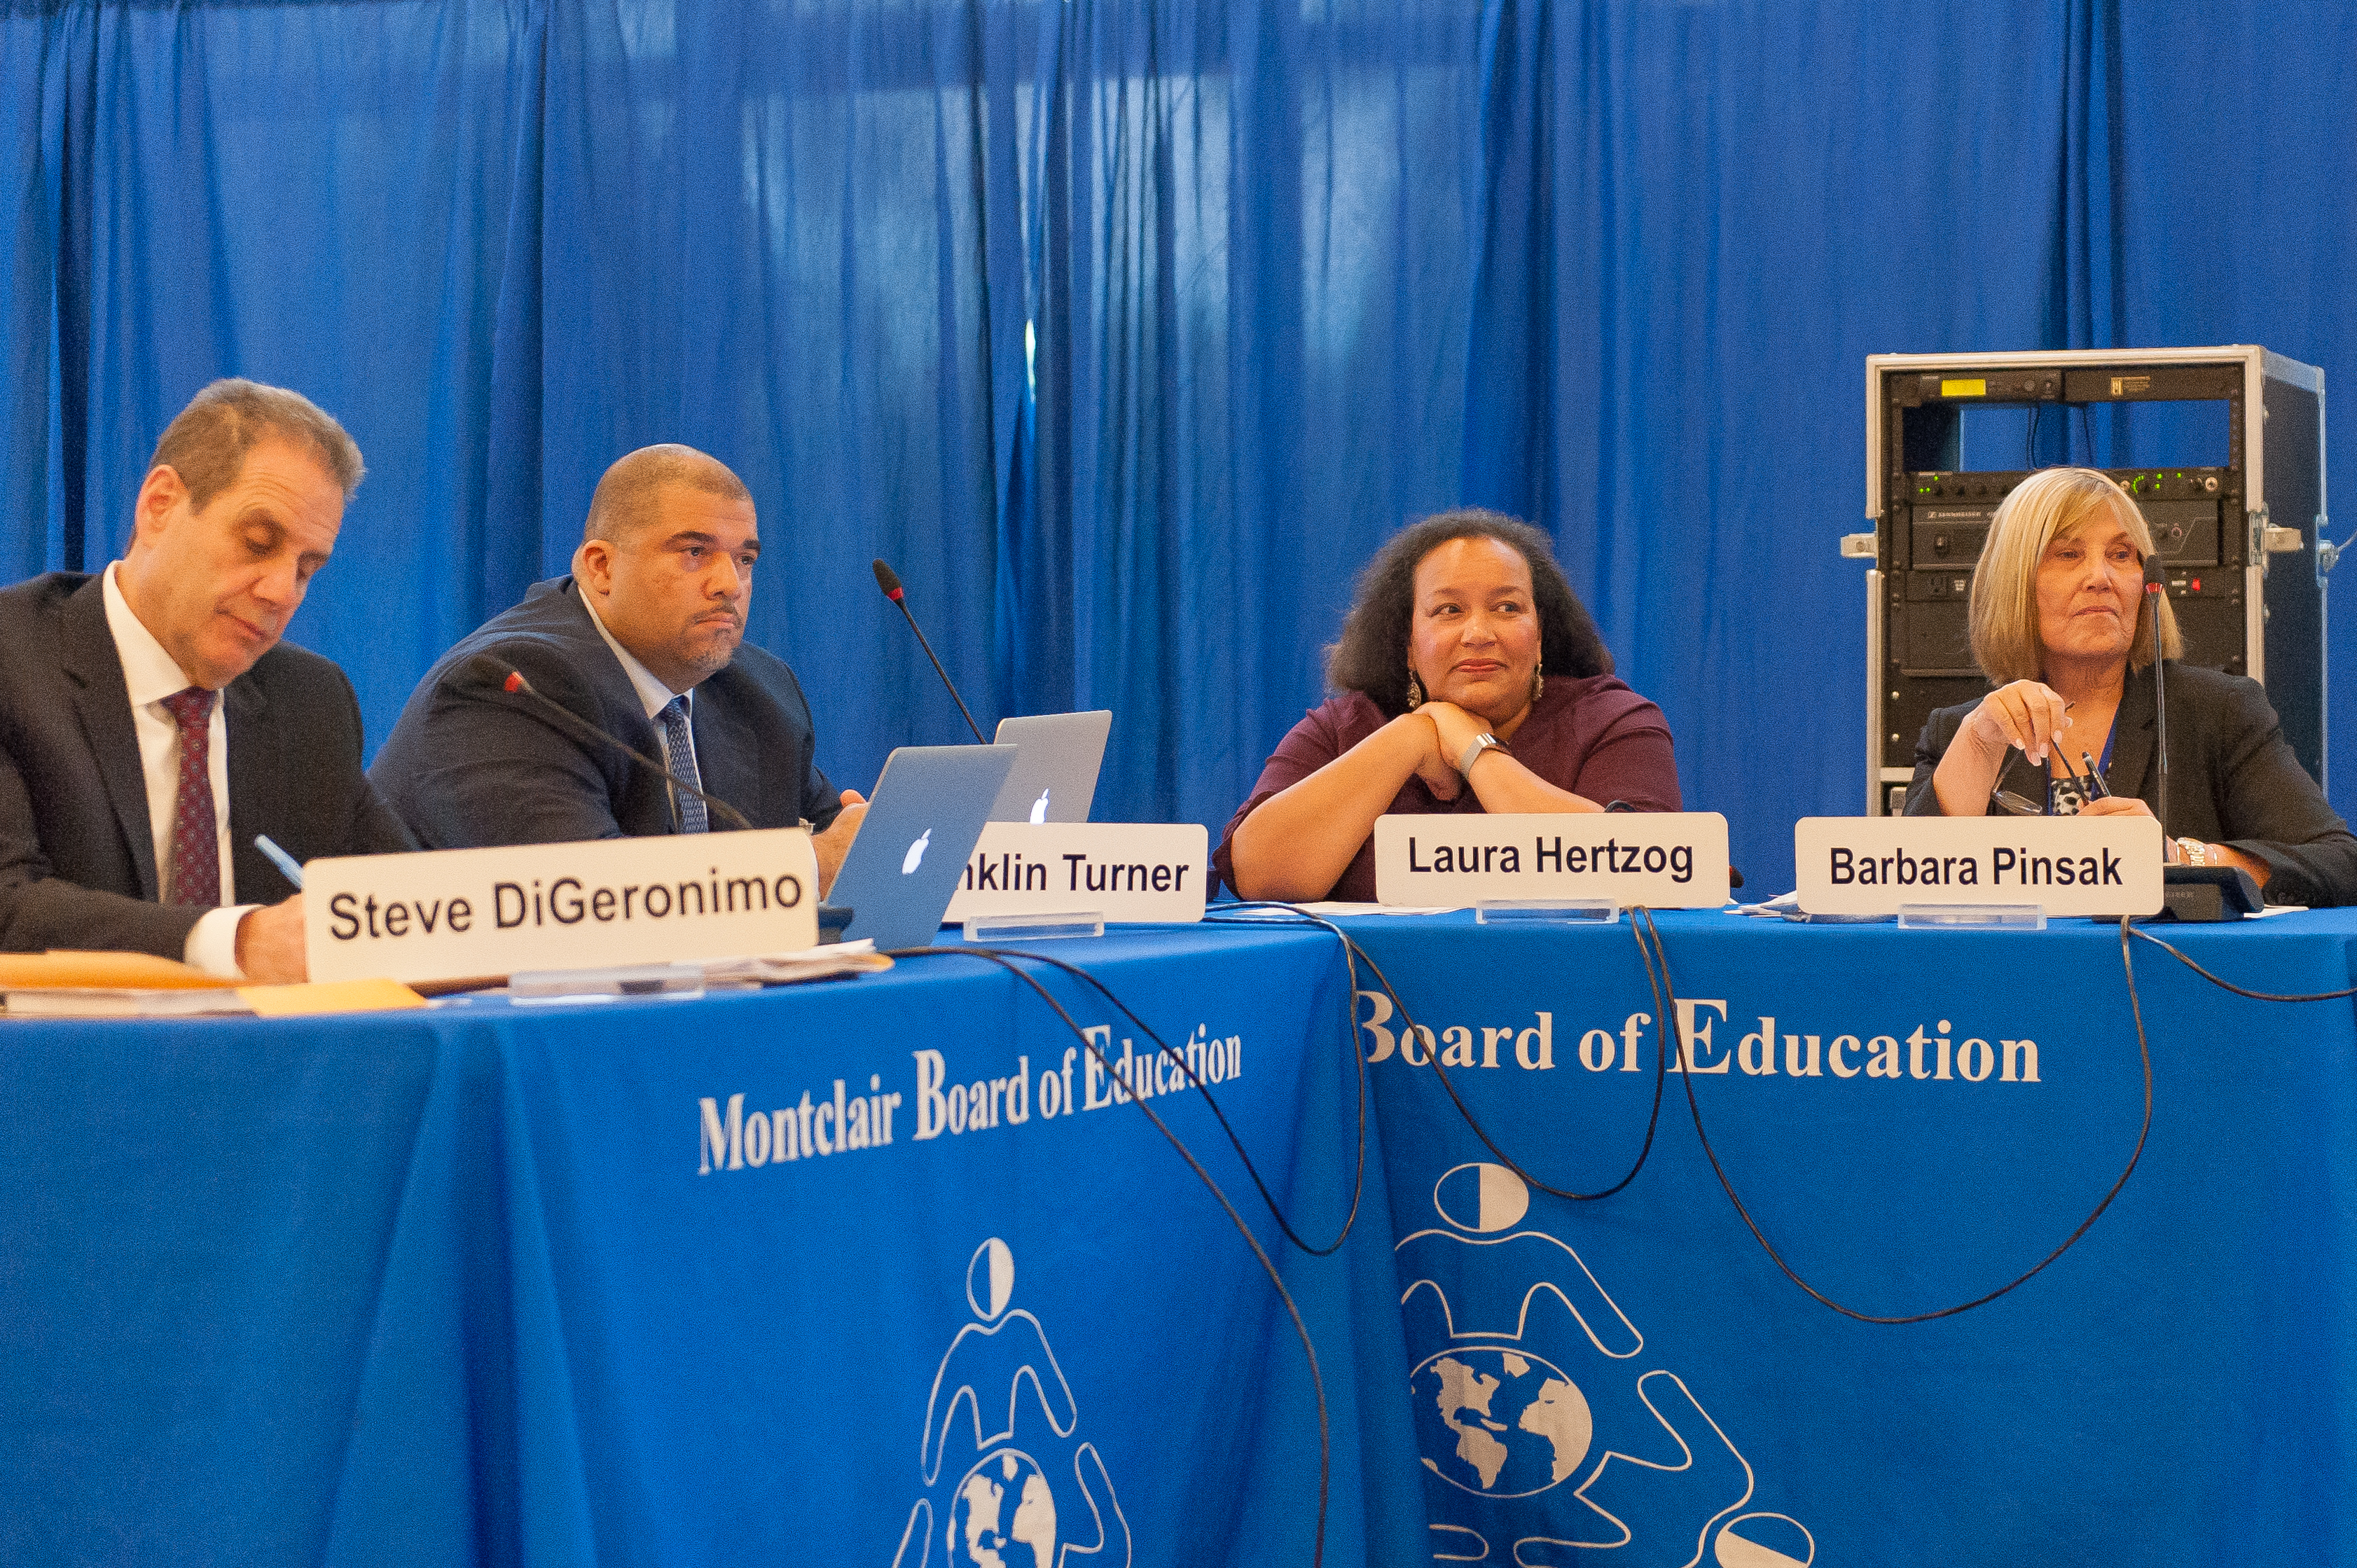 The Montclair Board of Education on Tuesday, May 16, 2017. Photo by Scott Kennedy for The Montclair Dispatch.